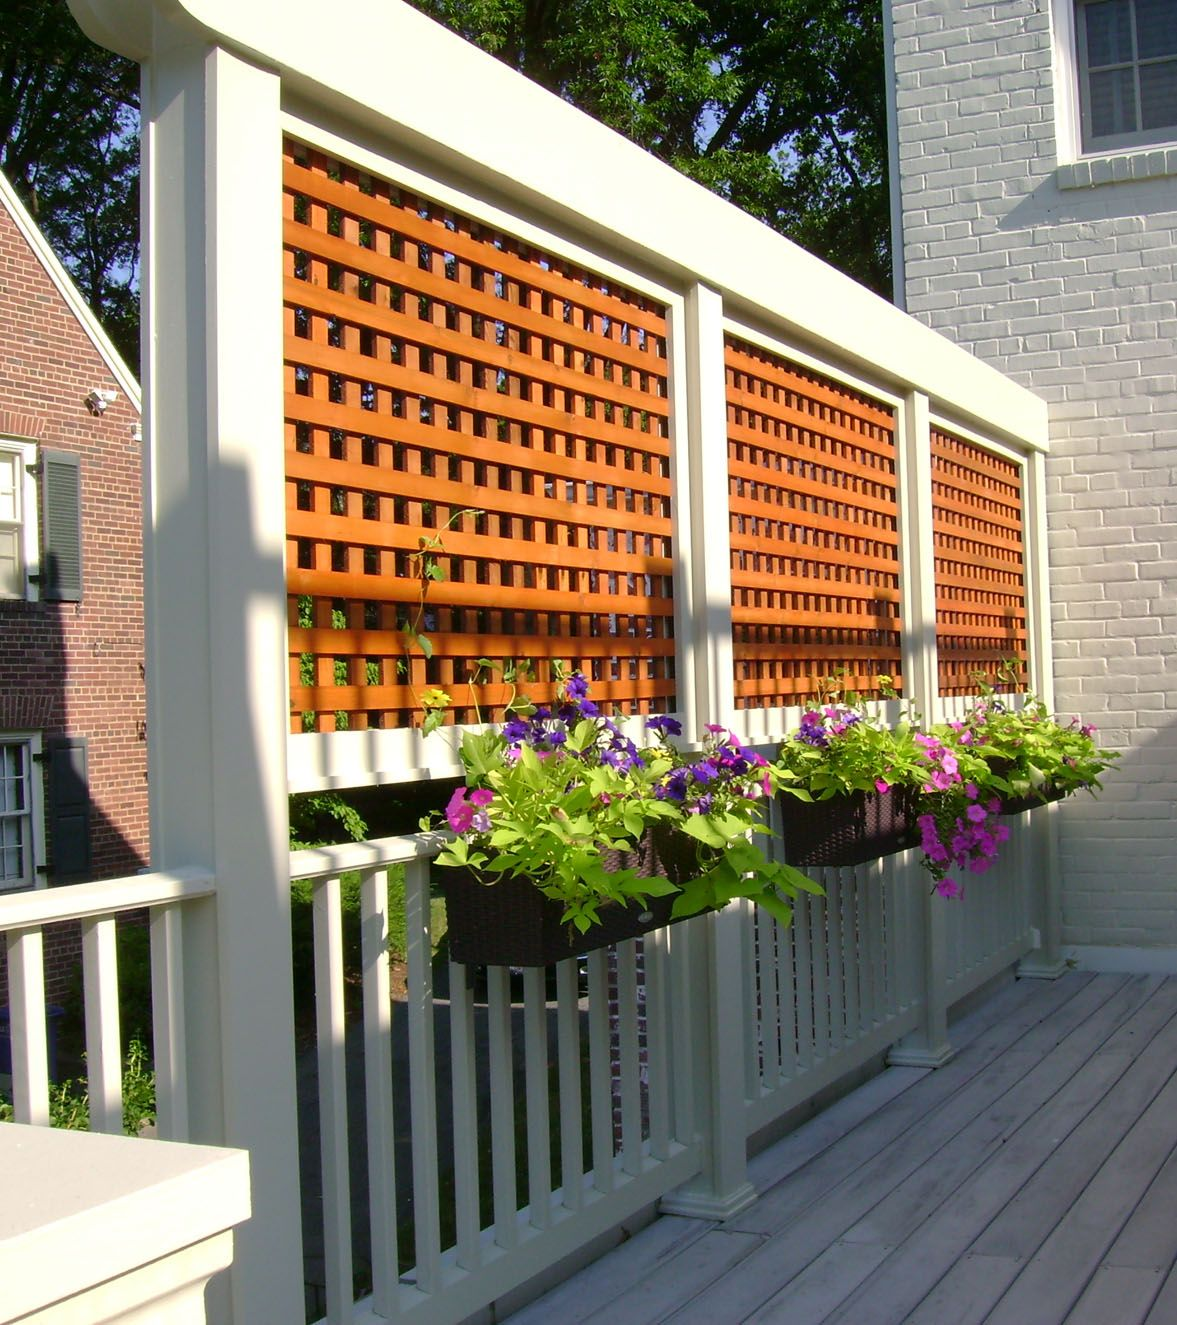 A little privacy makes for good neighbors petro design for Patio deck privacy screen